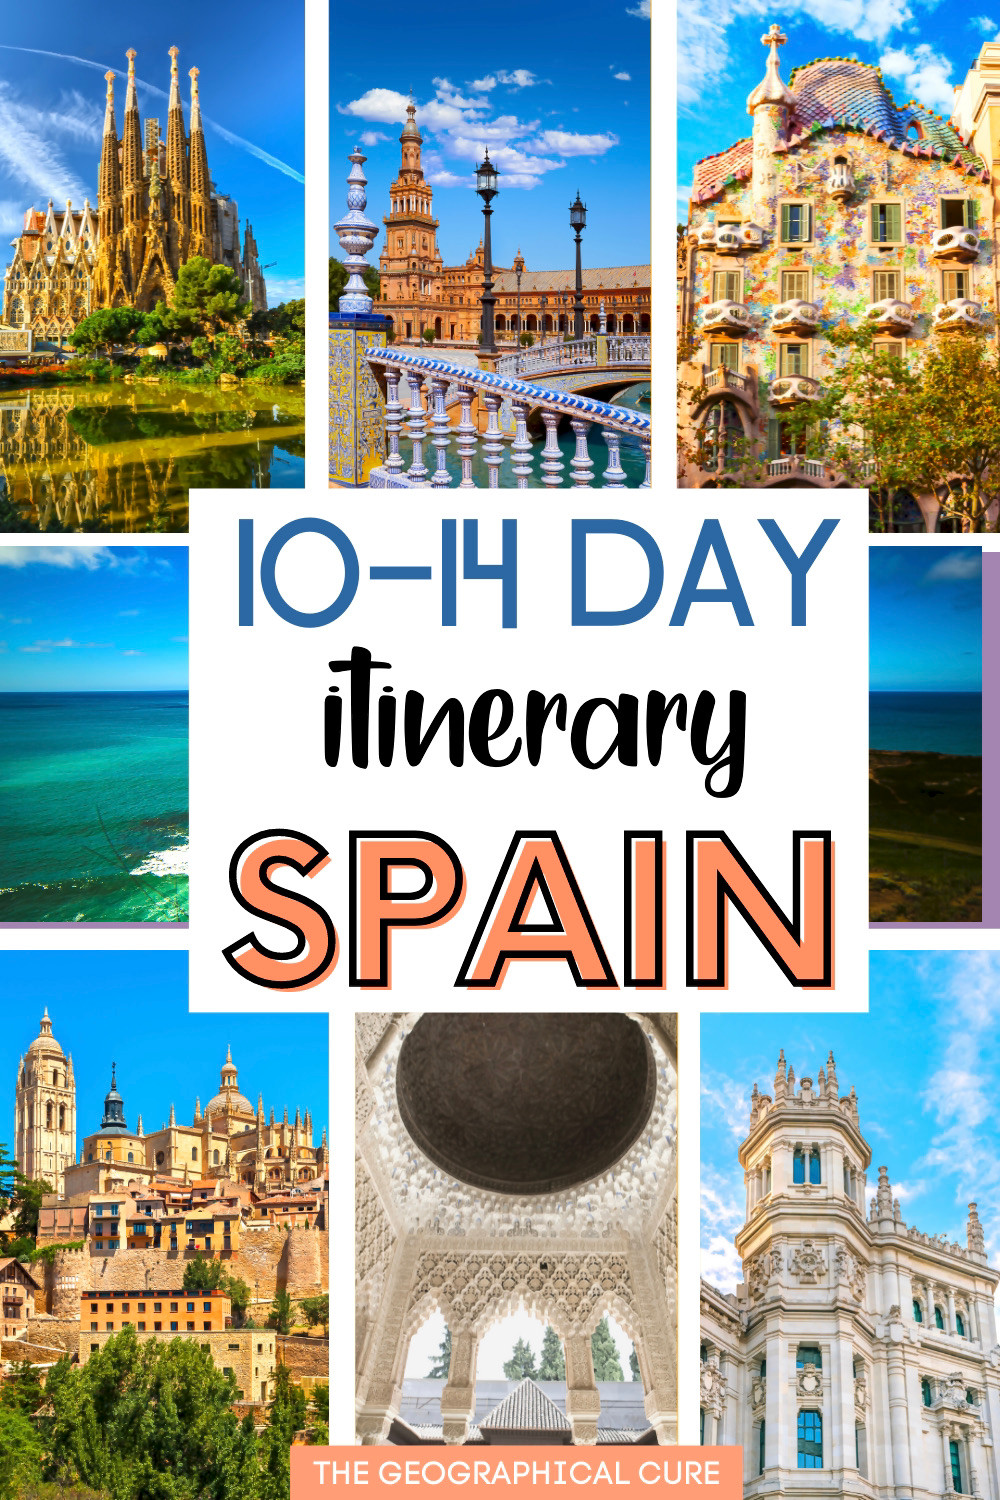 epic 10-14 day itinerary for Spain